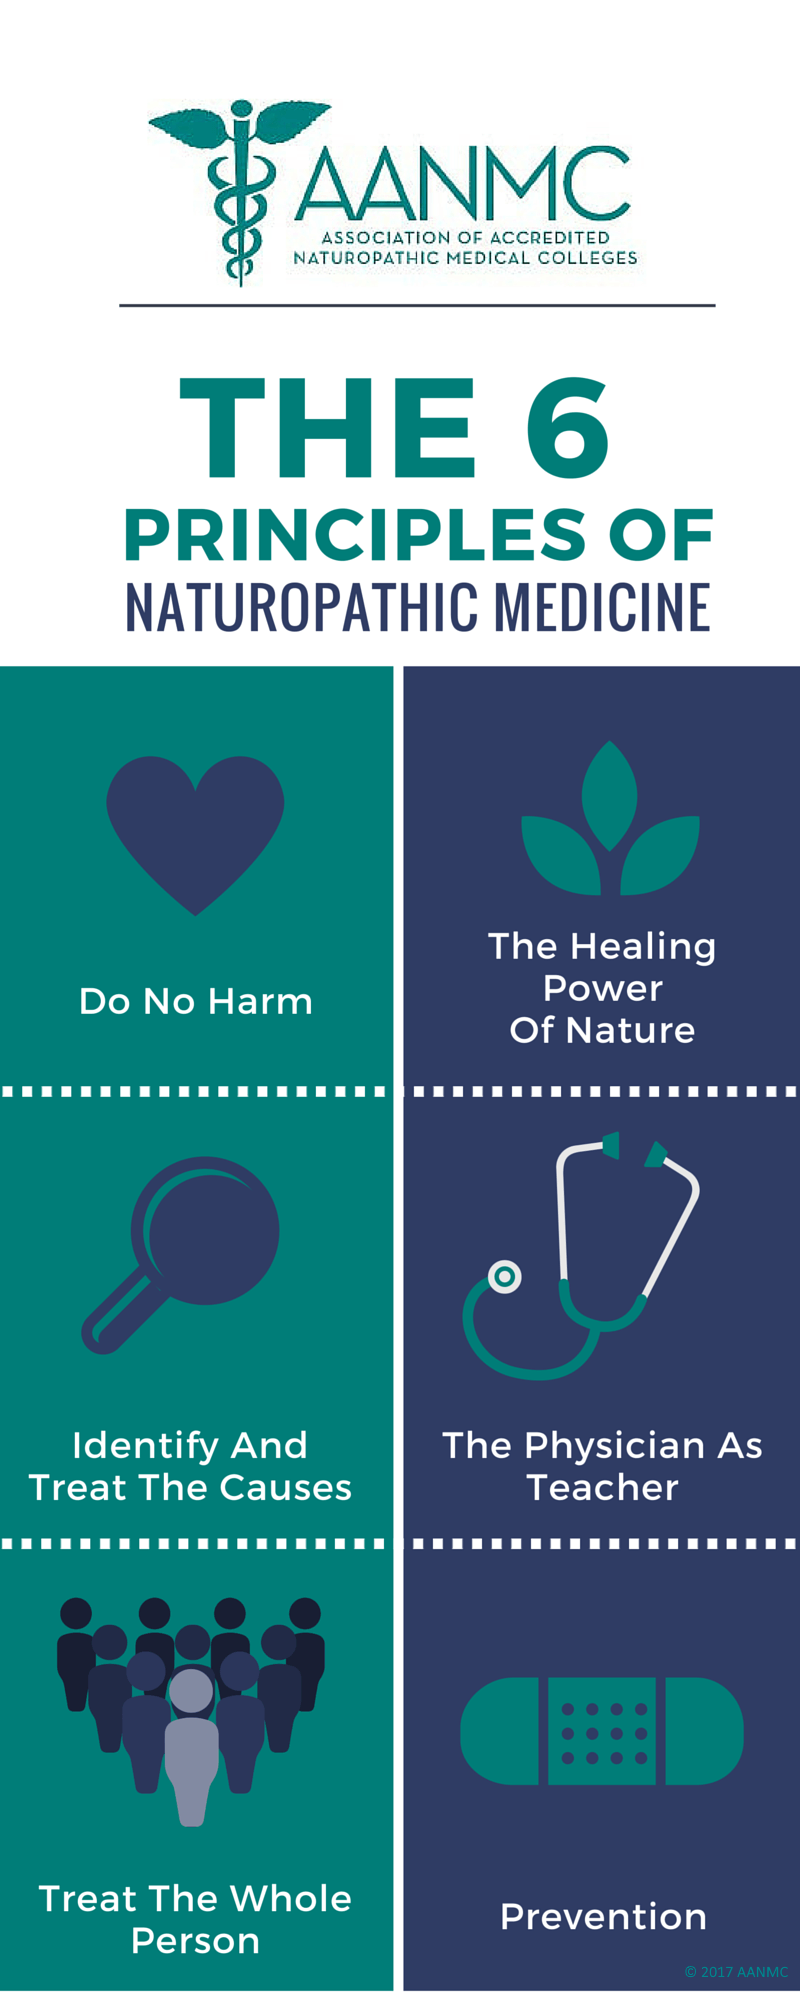 6 principles of naturopathic medicine